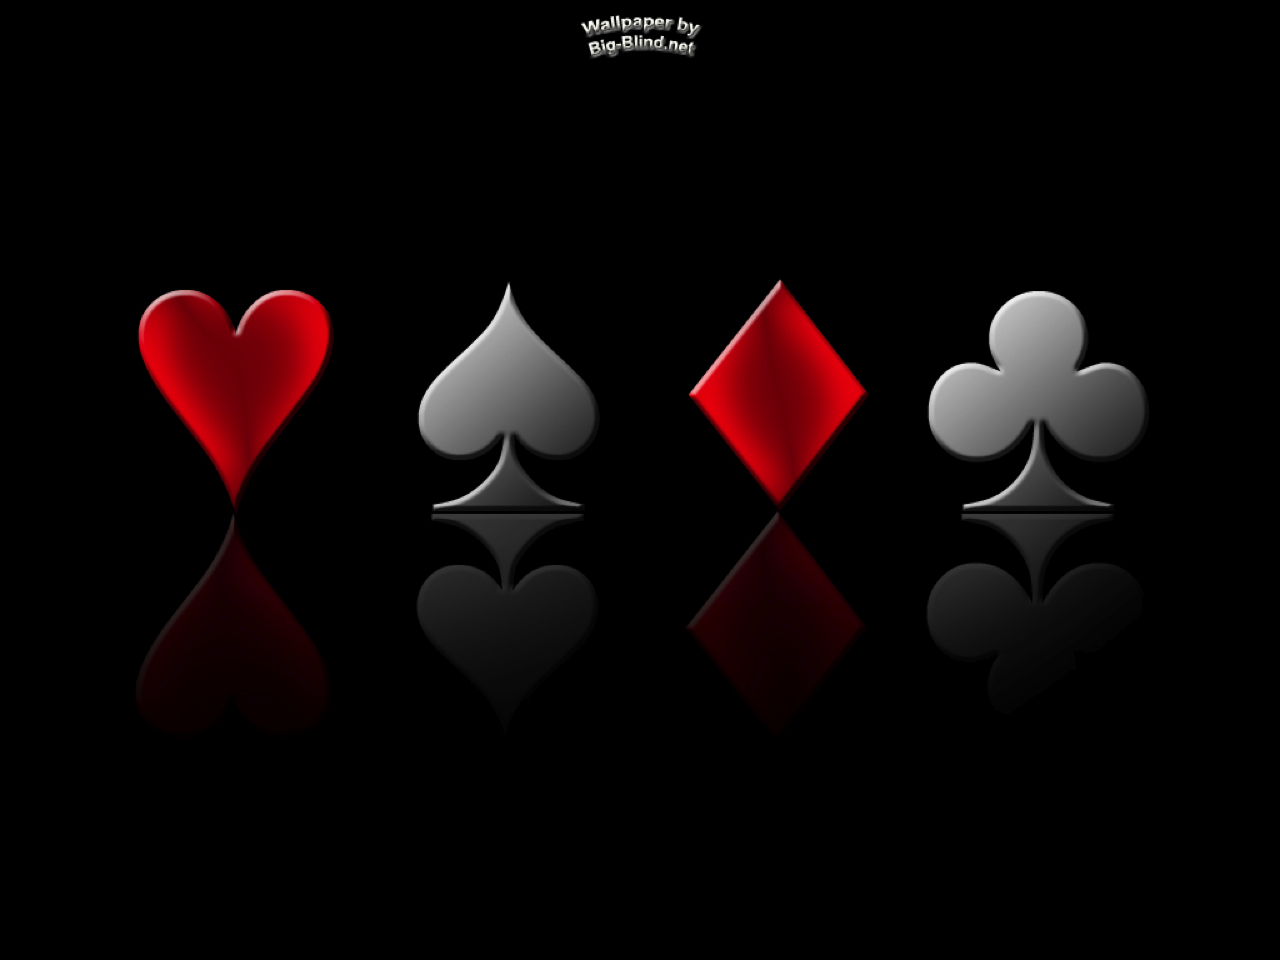 3d Home Wallpaper For Pc Ⓦallⓟapers Sfondi Poker